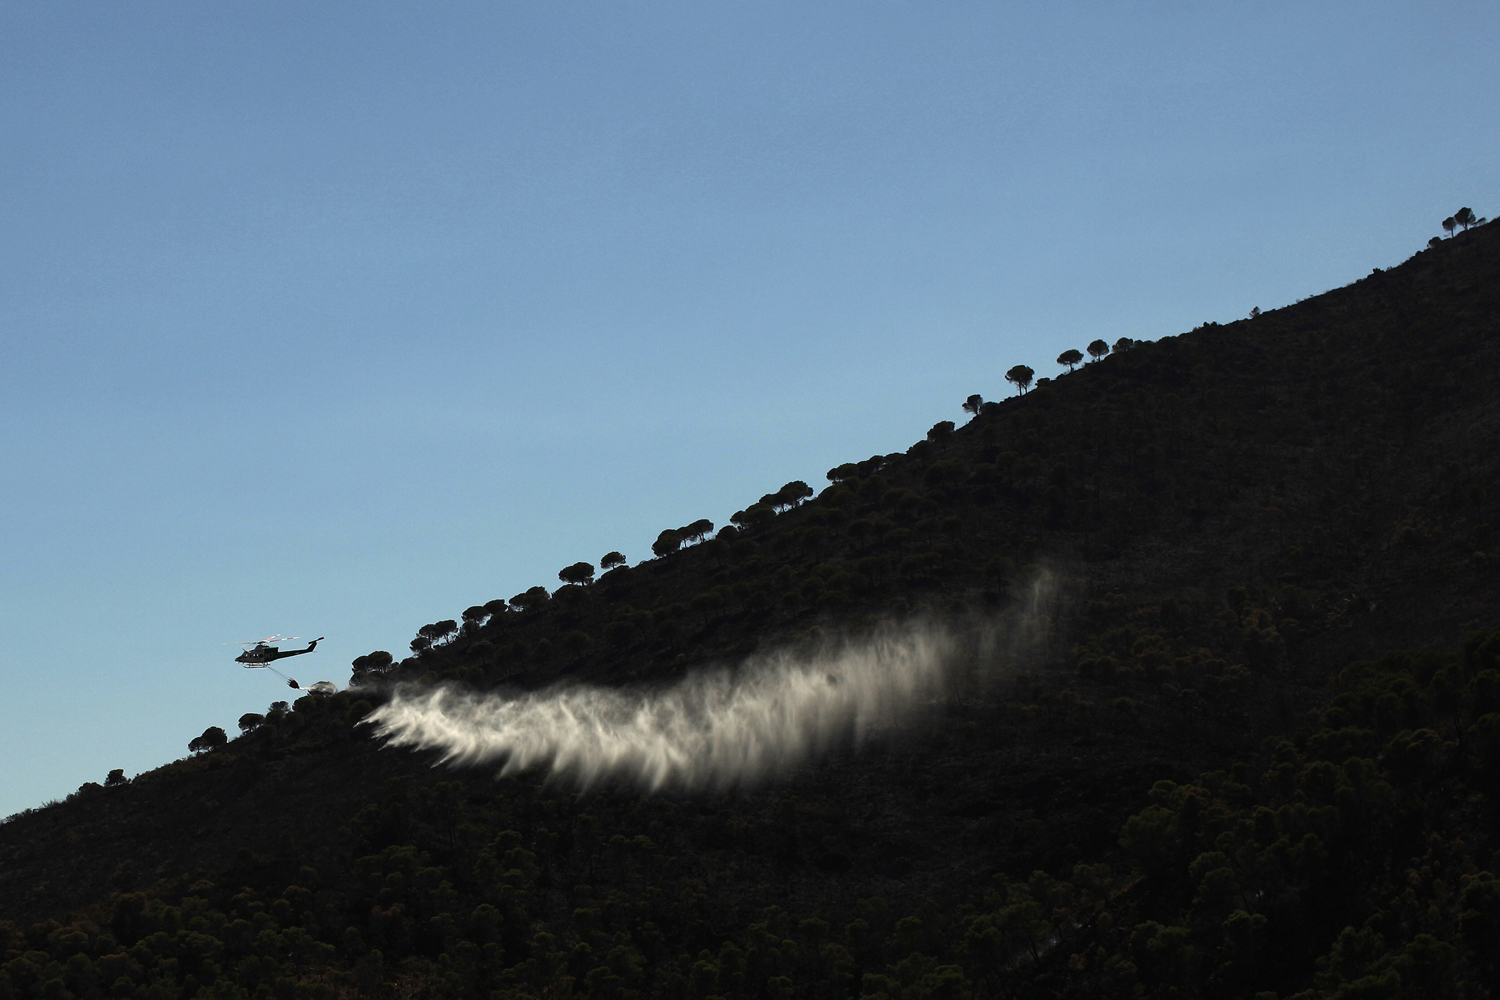 September 12, 2011. A helicopter drops water over a wildfire in the neighborhood of Entrerrios in Mijas, near Malaga, Spain.